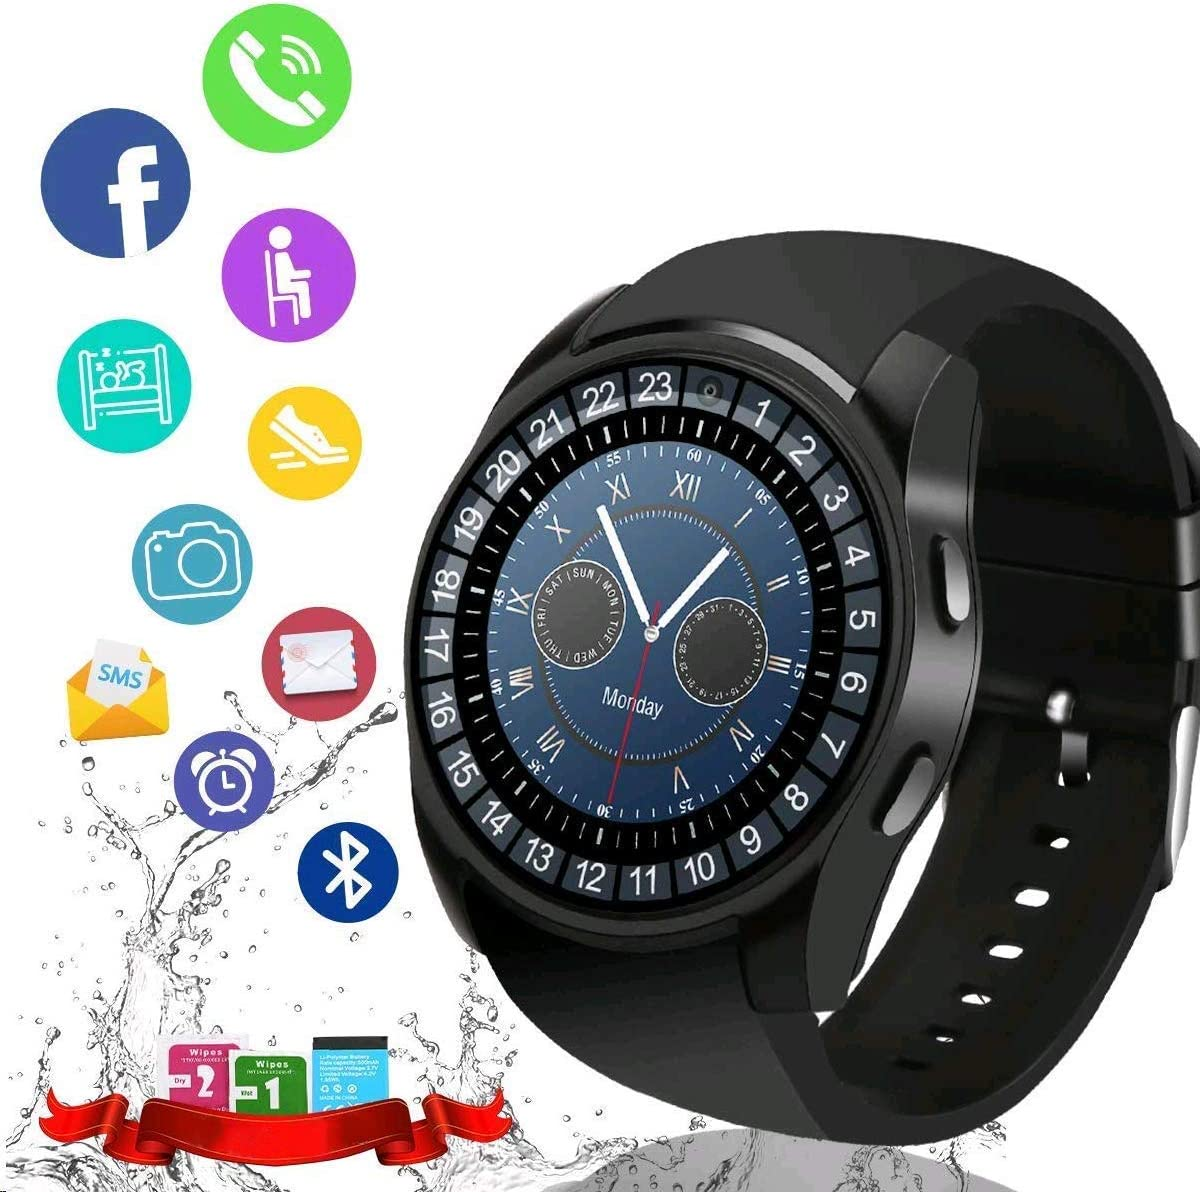 iFuntecky Smart Watch,Bluetooth Smartwatch Touchscreen with Camera, Smart Watches Waterproof Smart Wrist Watch Phone Compatible Android for Men Women ...